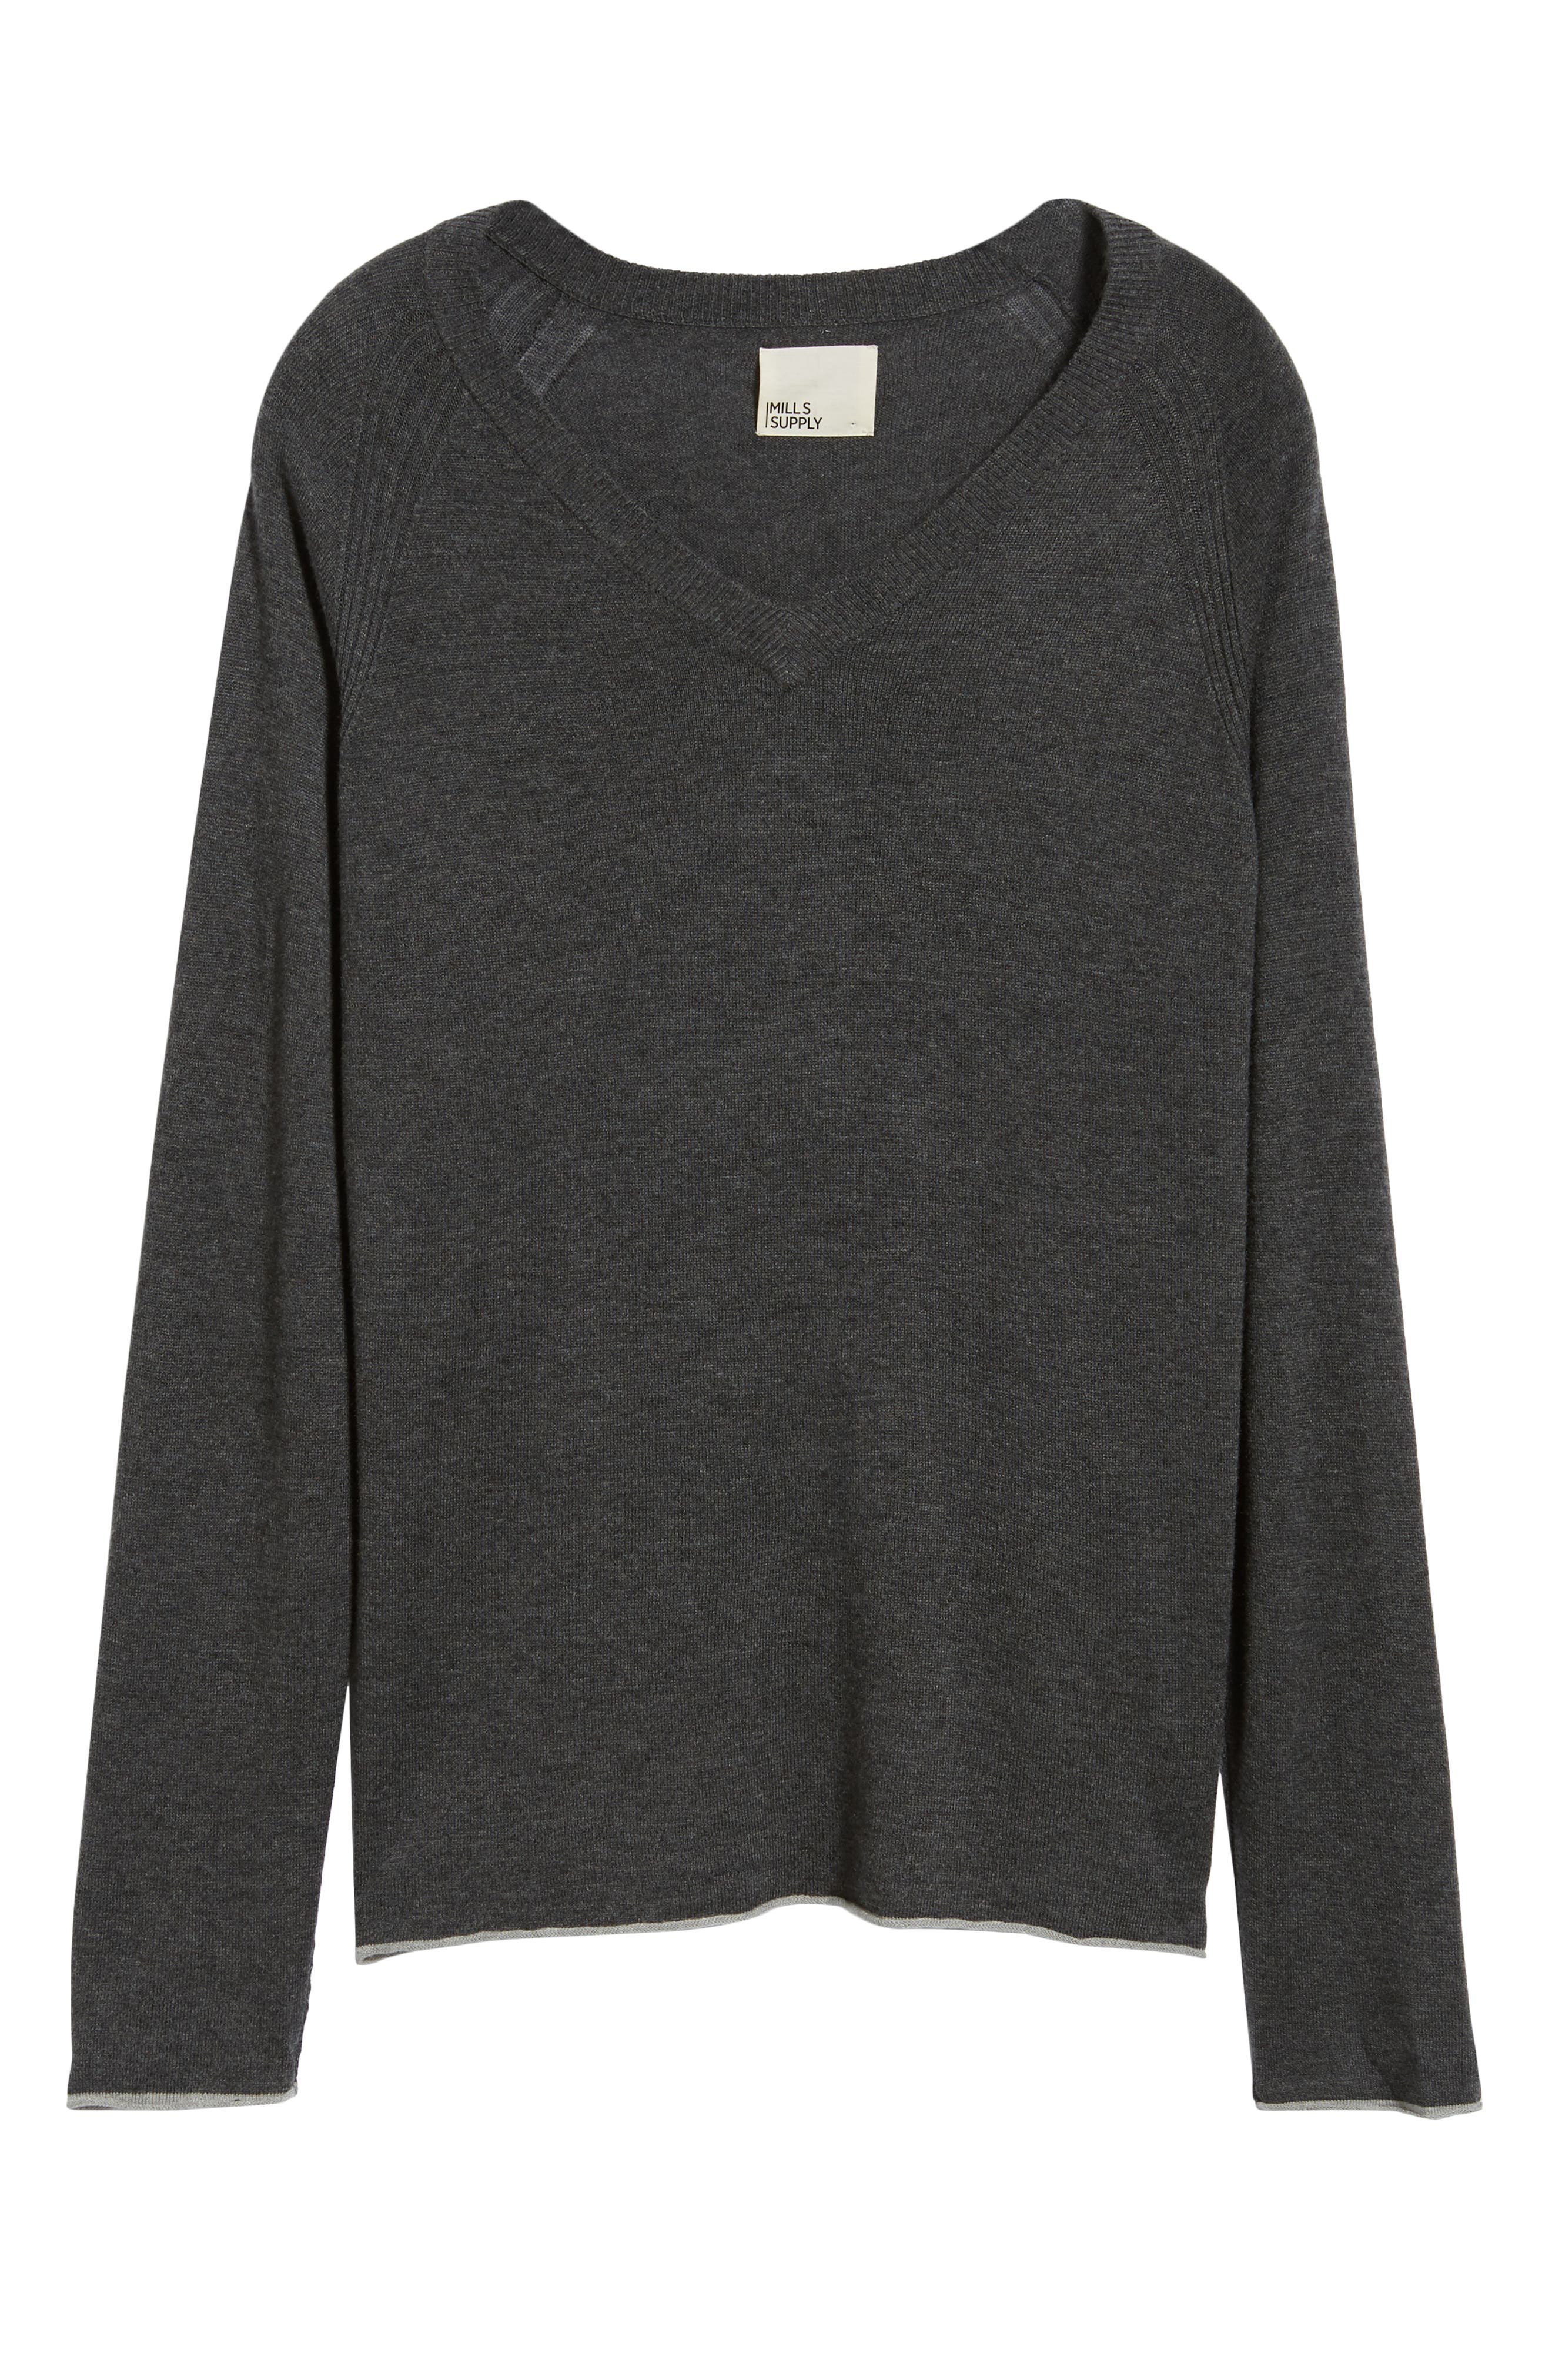 Salinas Cash V-Neck Sweater,                             Alternate thumbnail 6, color,                             CHARCOAL HEATHER